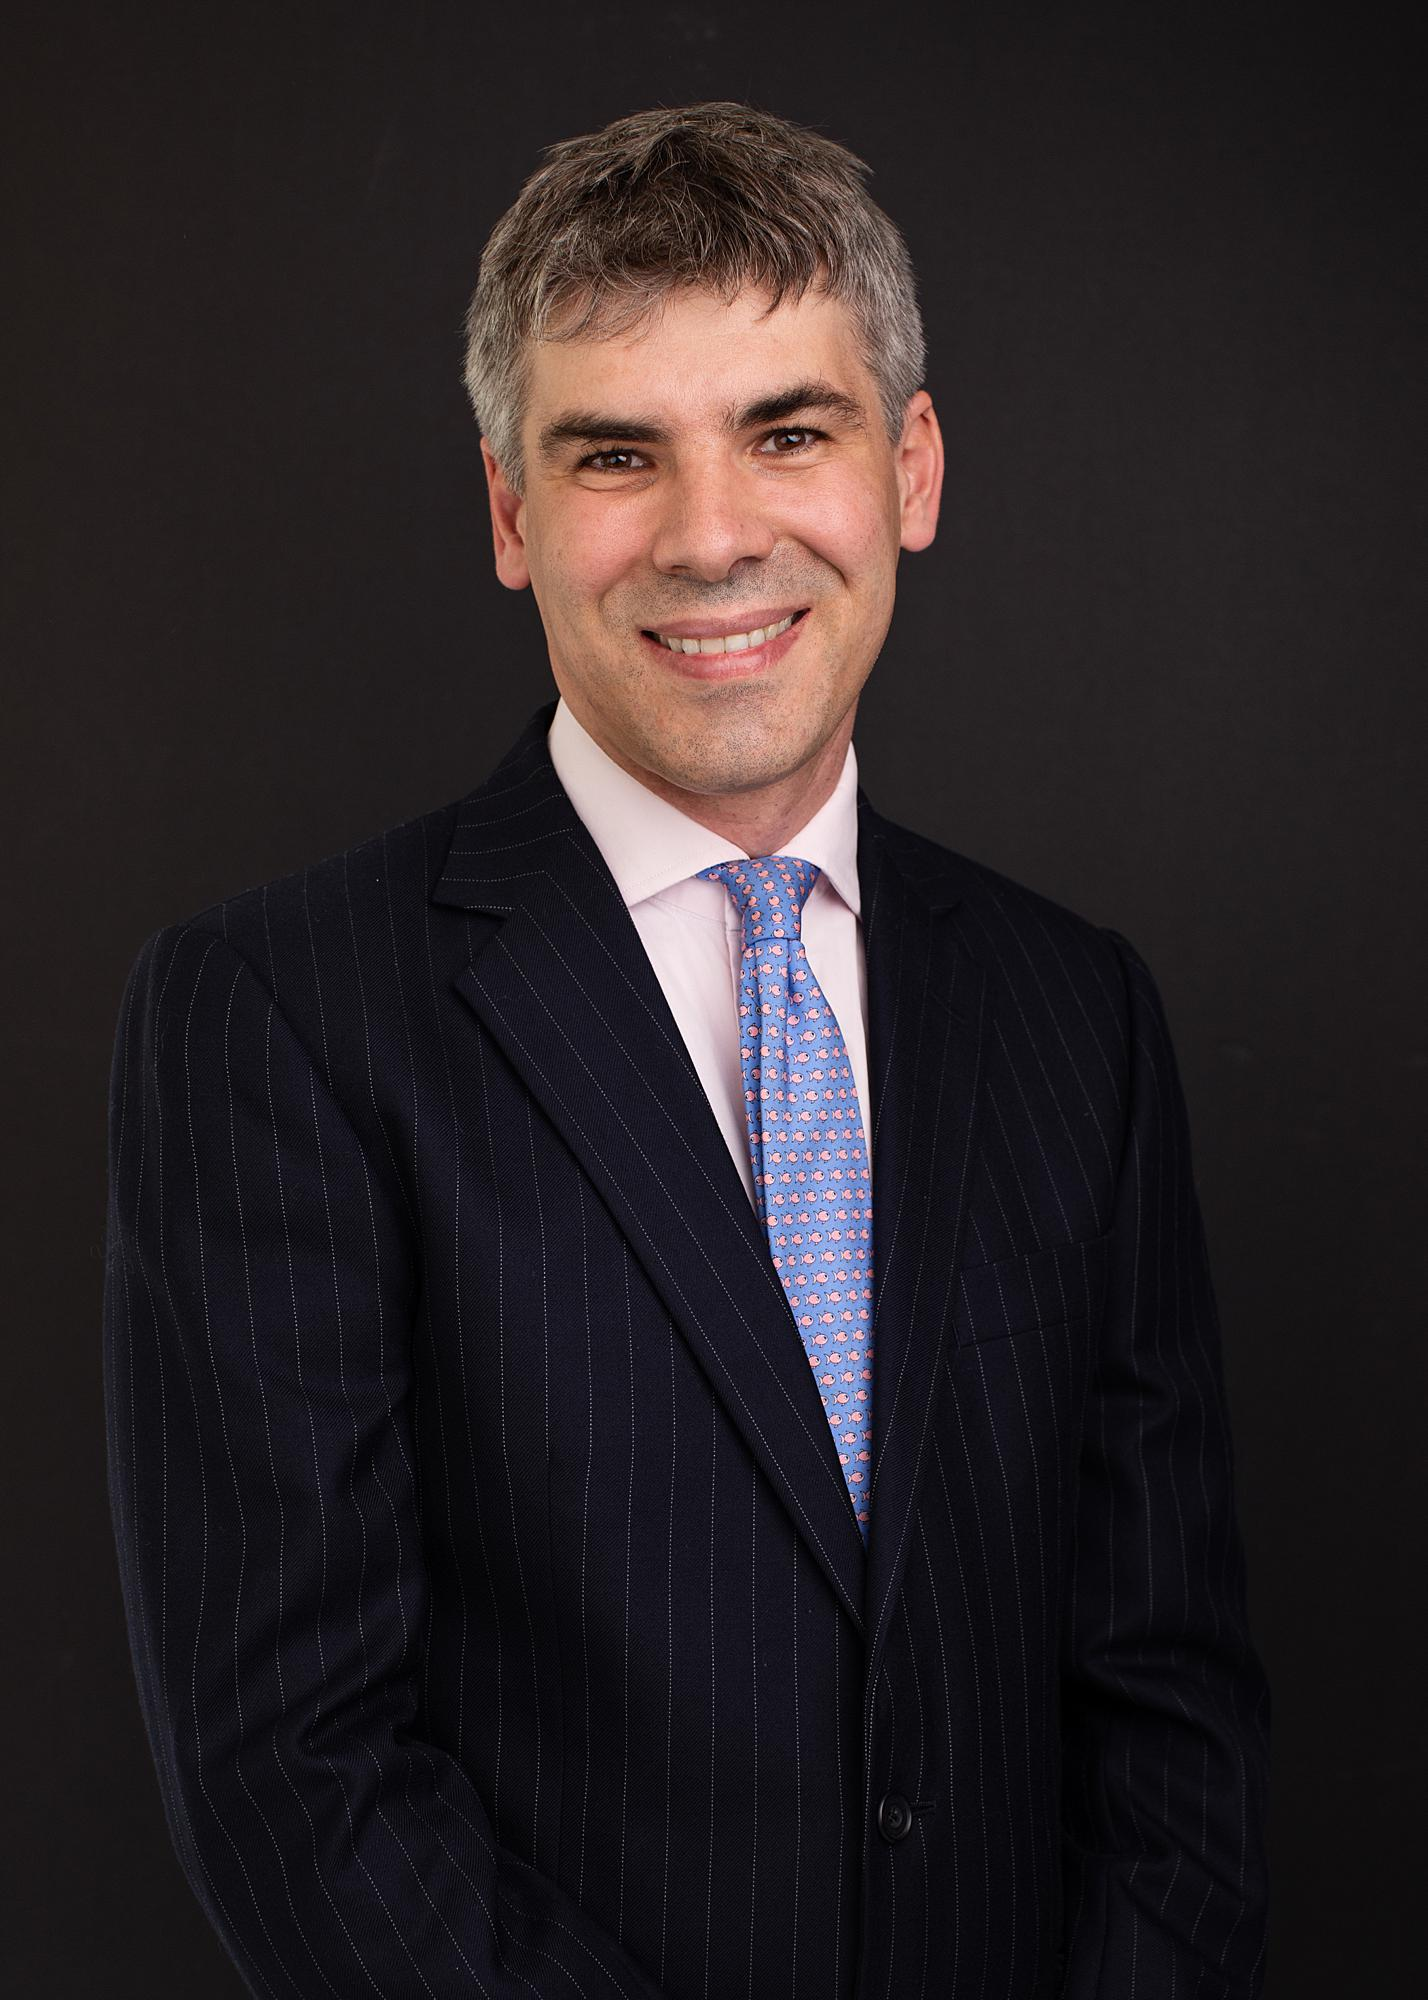 Man in a suit and blue tie smiling during a Headshot Photoshoot in Suffolk